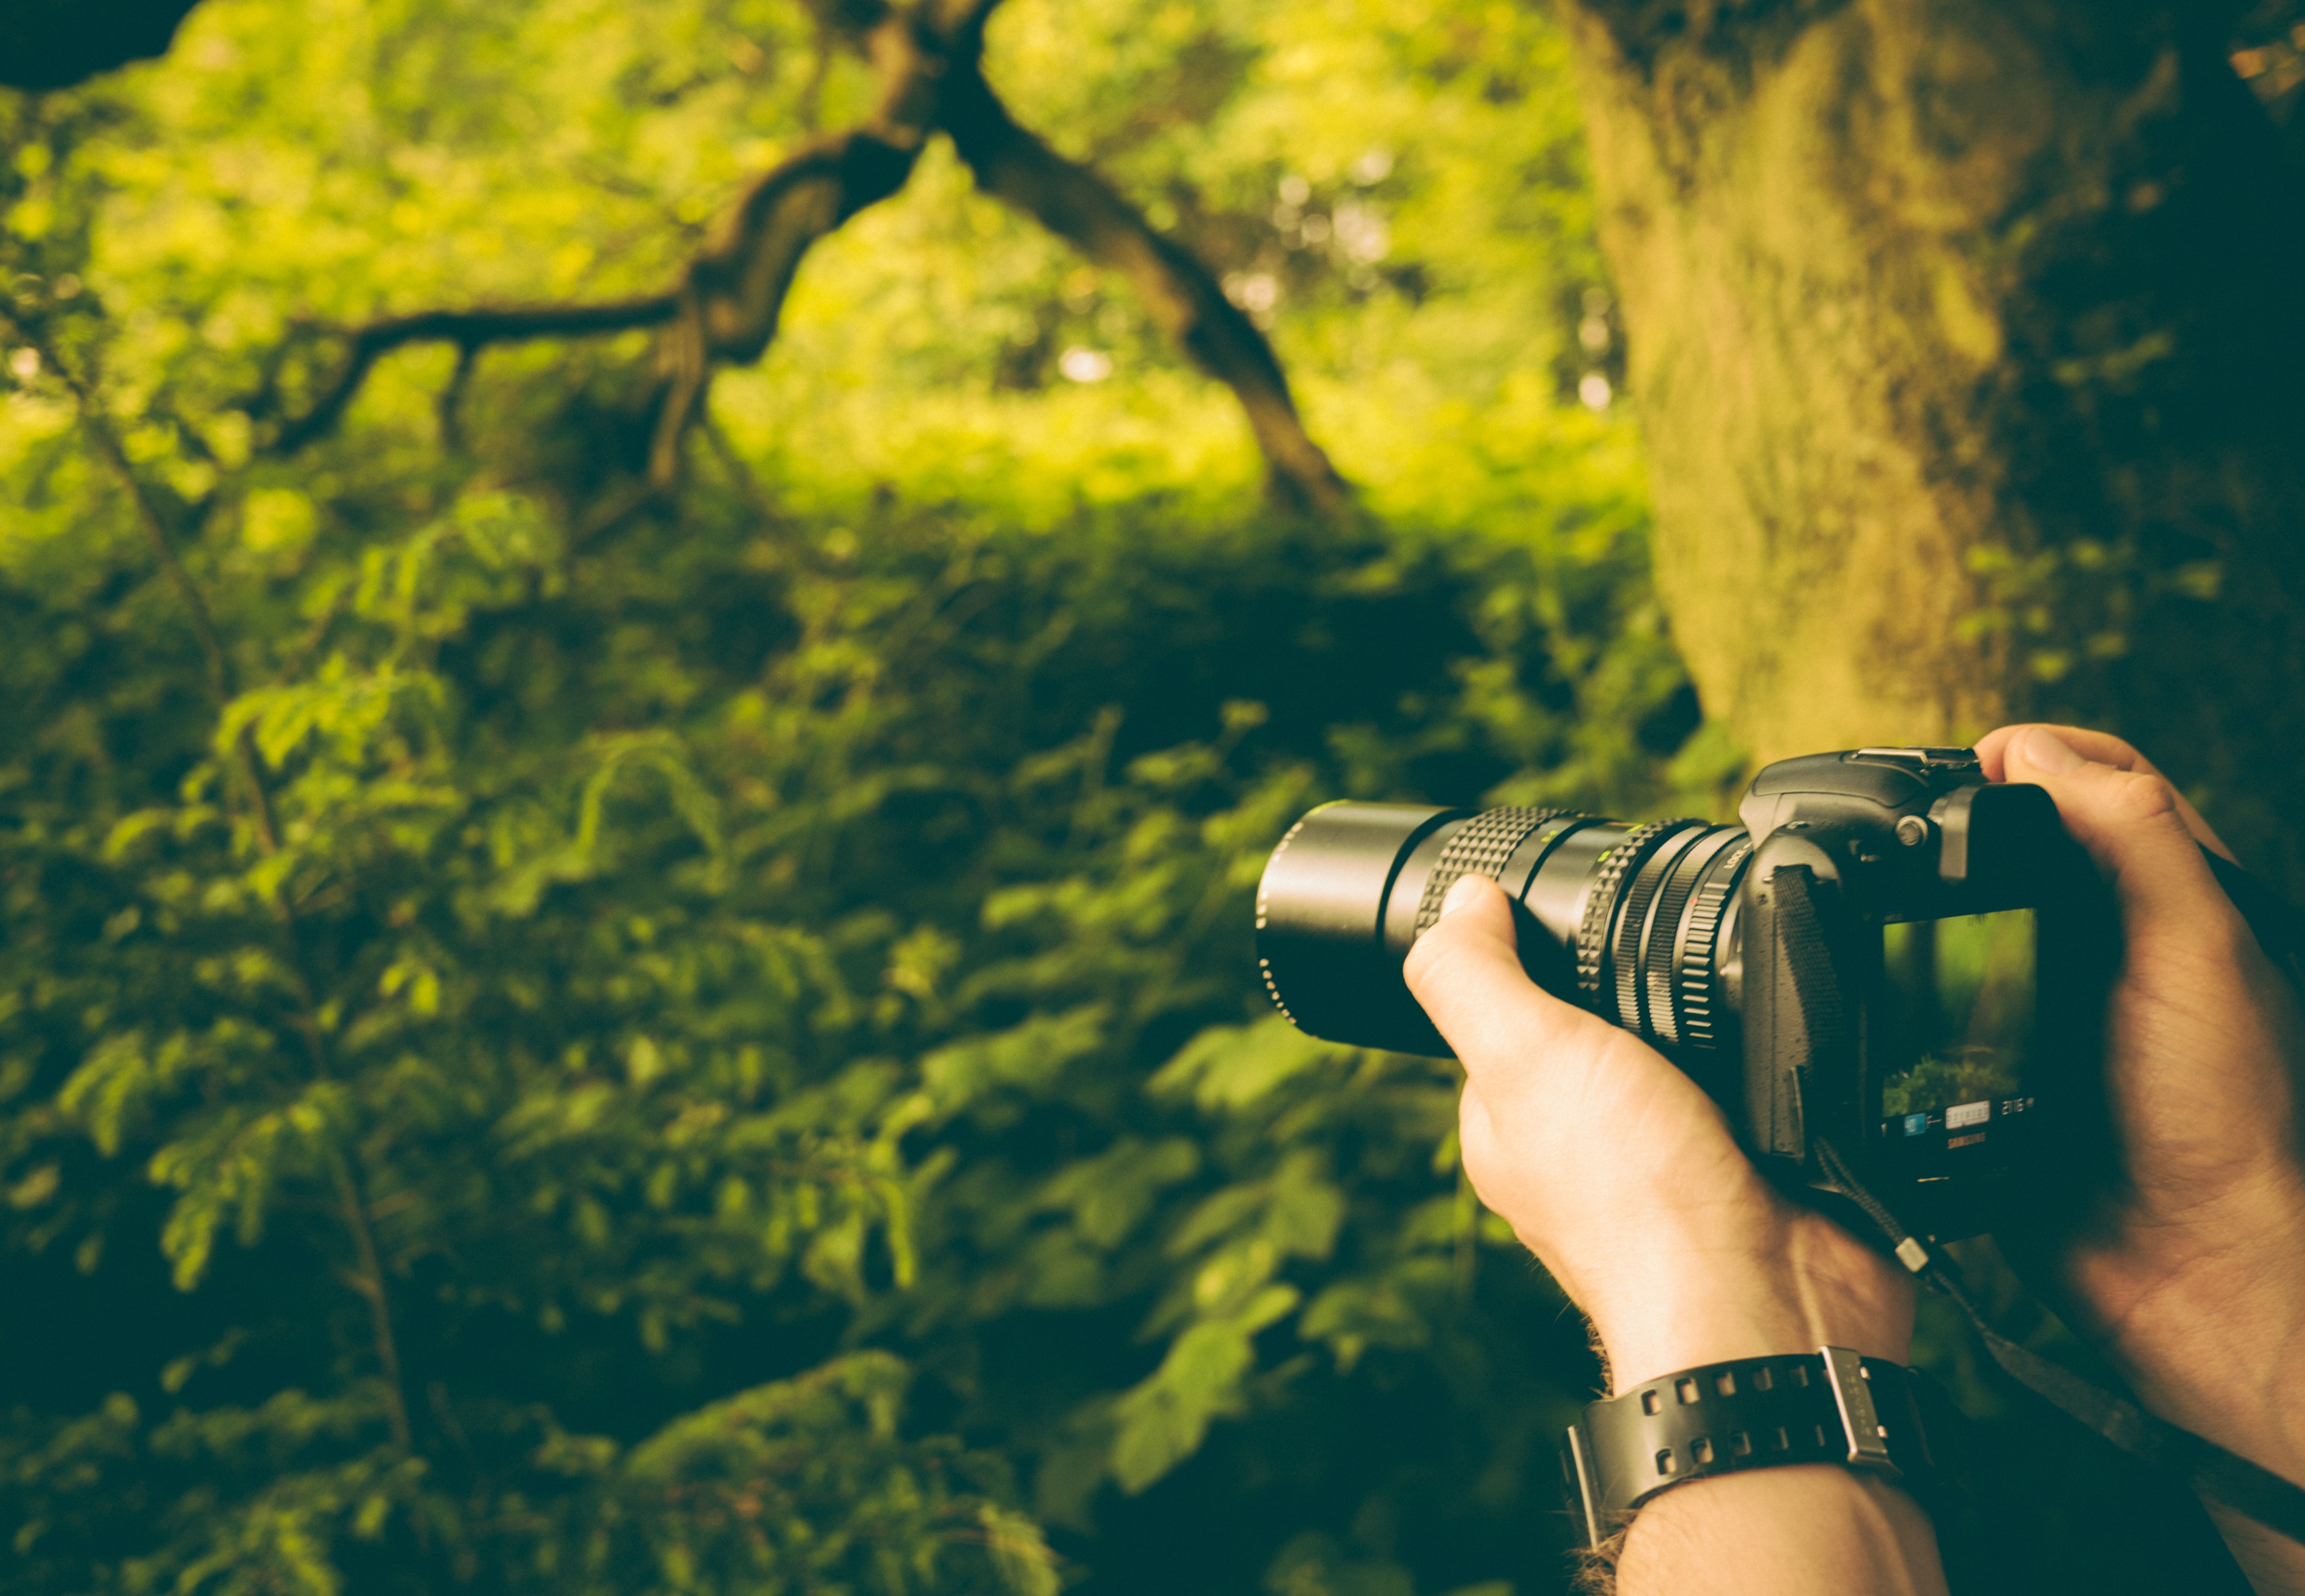 person holding DSLR camera taking picture of trees